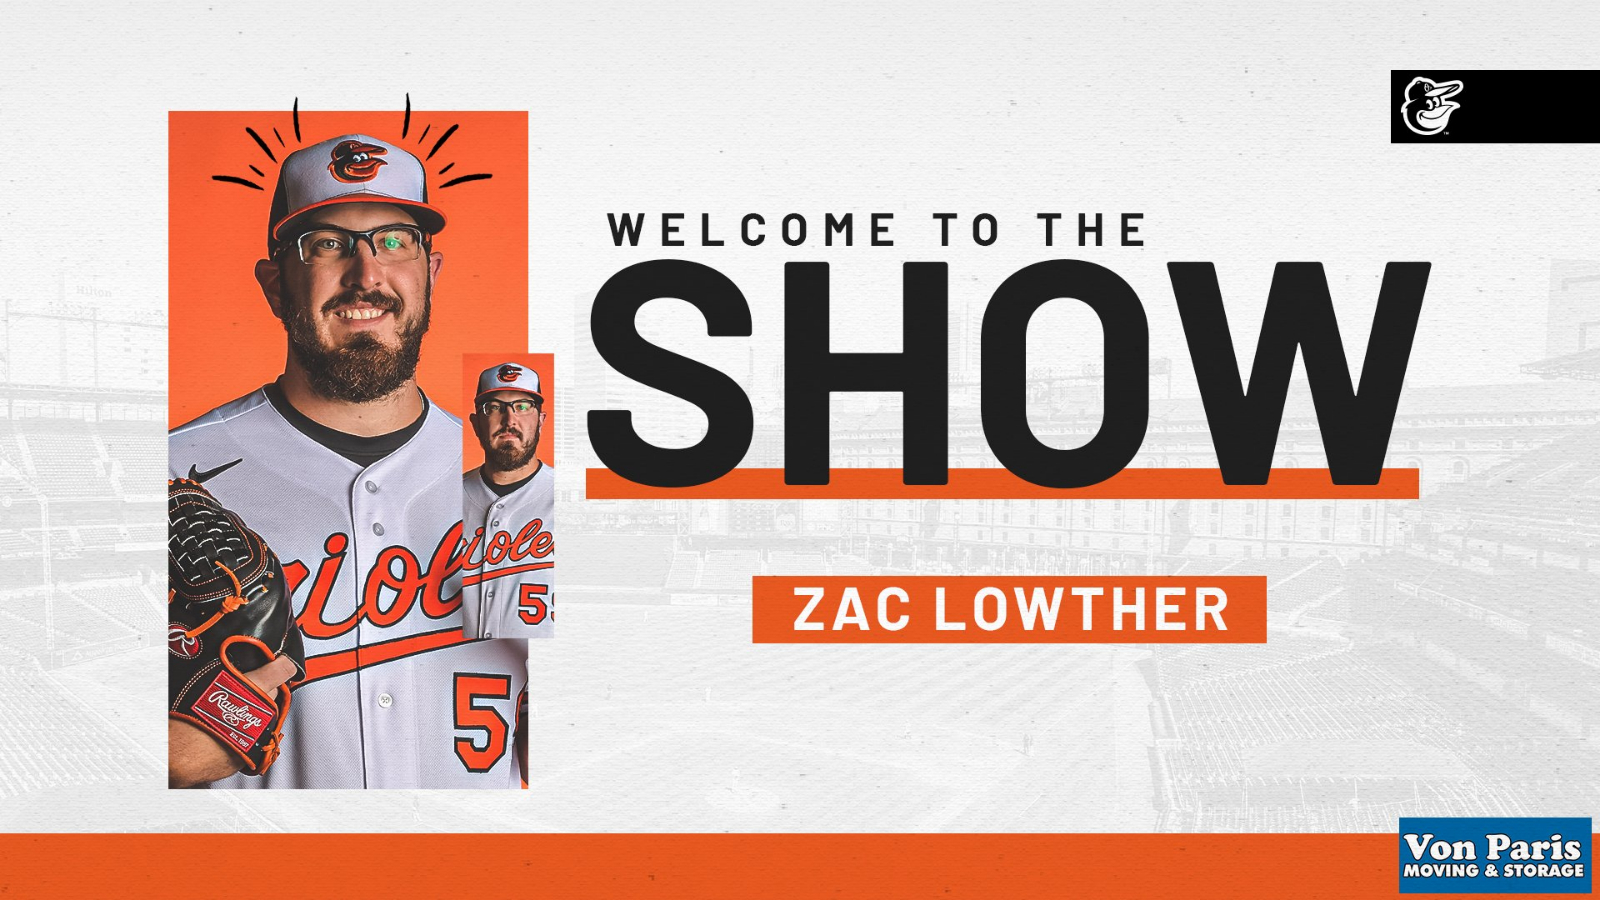 Zac Lowther makes MLB Debut!